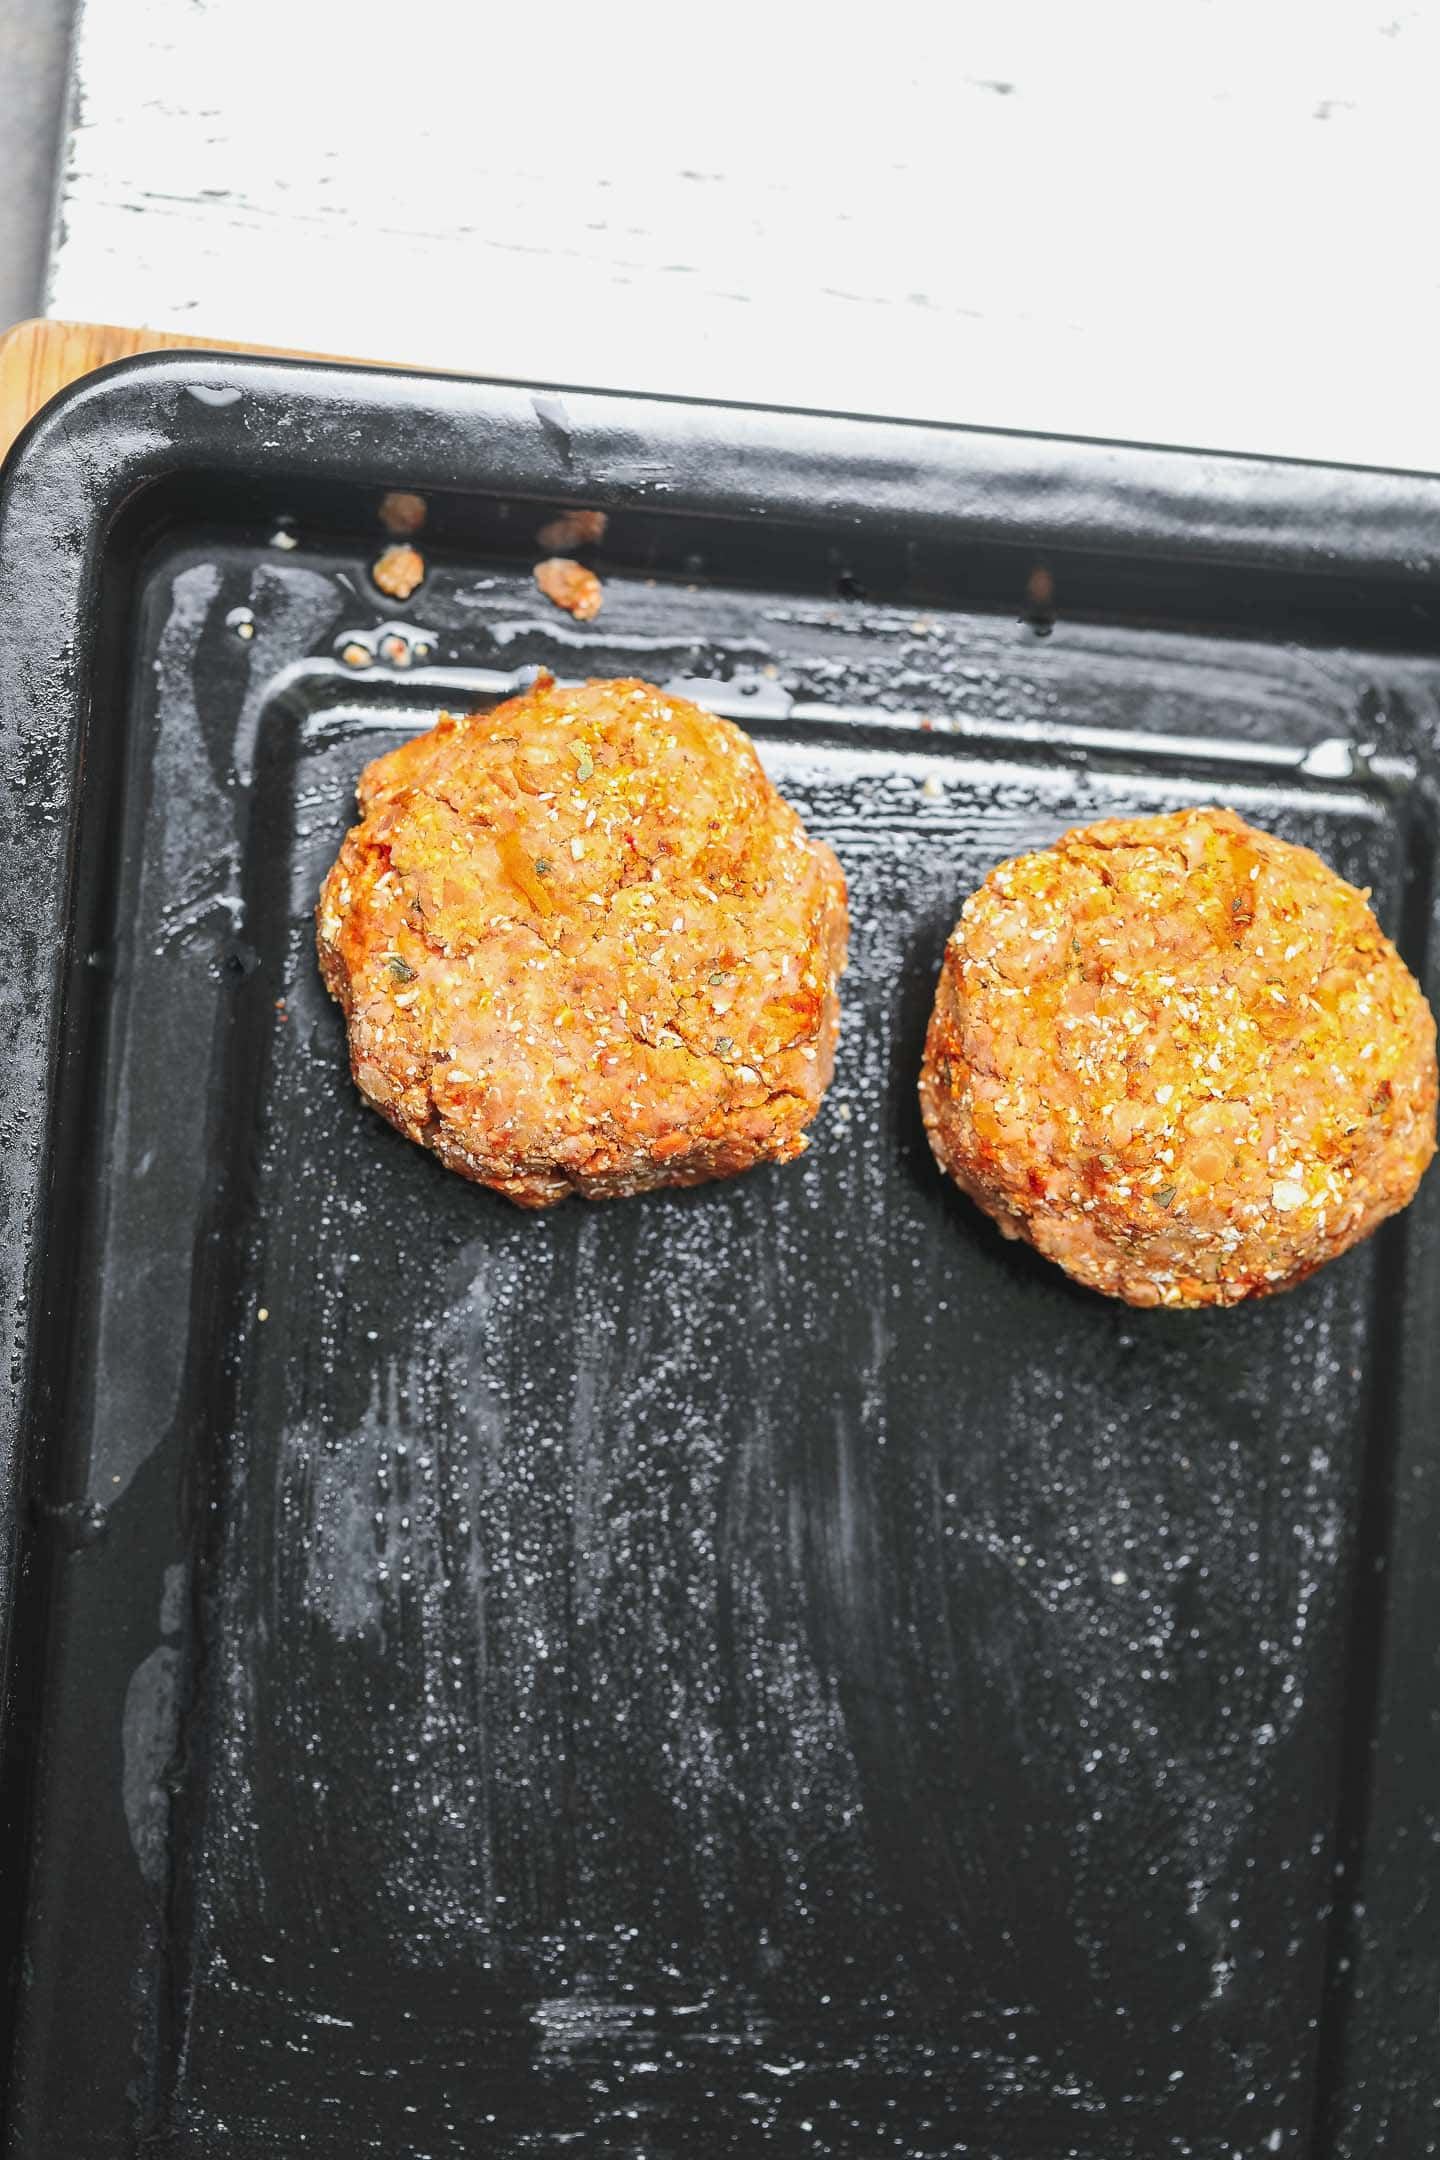 Veggie burgers on a baking tray before cooking